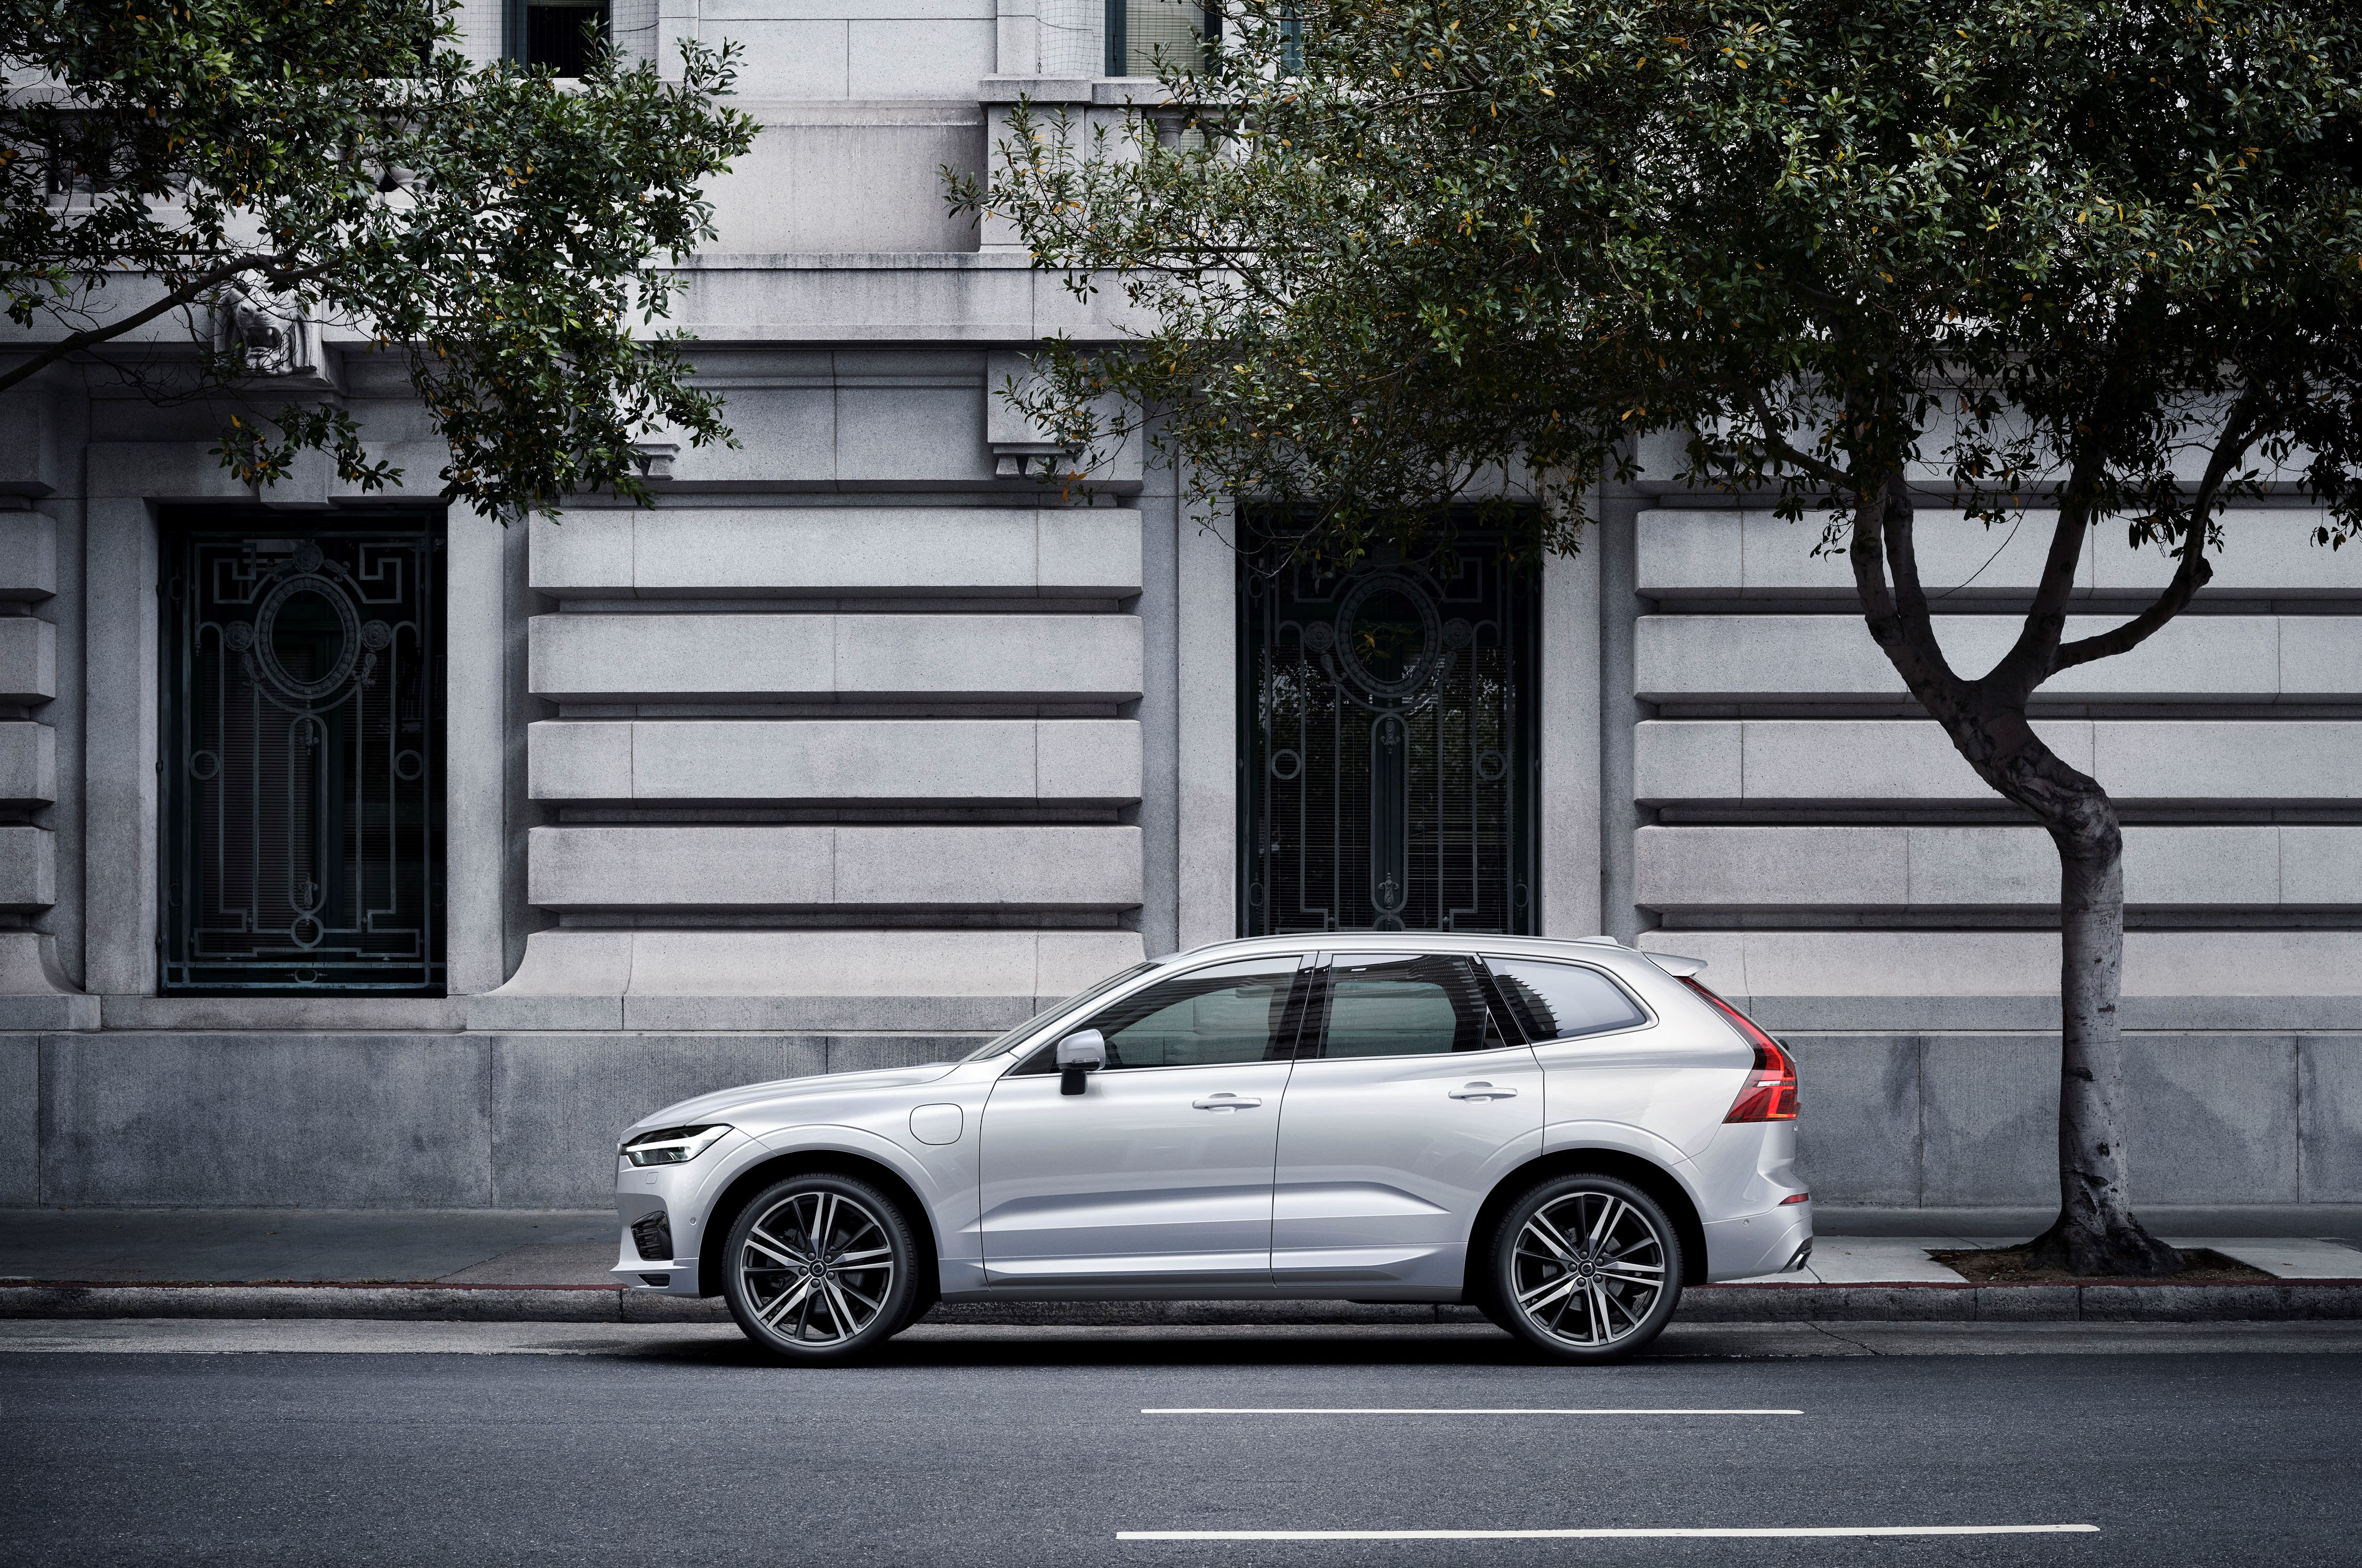 volvo new engine output up twin the touch to ups tune ps news electric after polestar treatment goes range